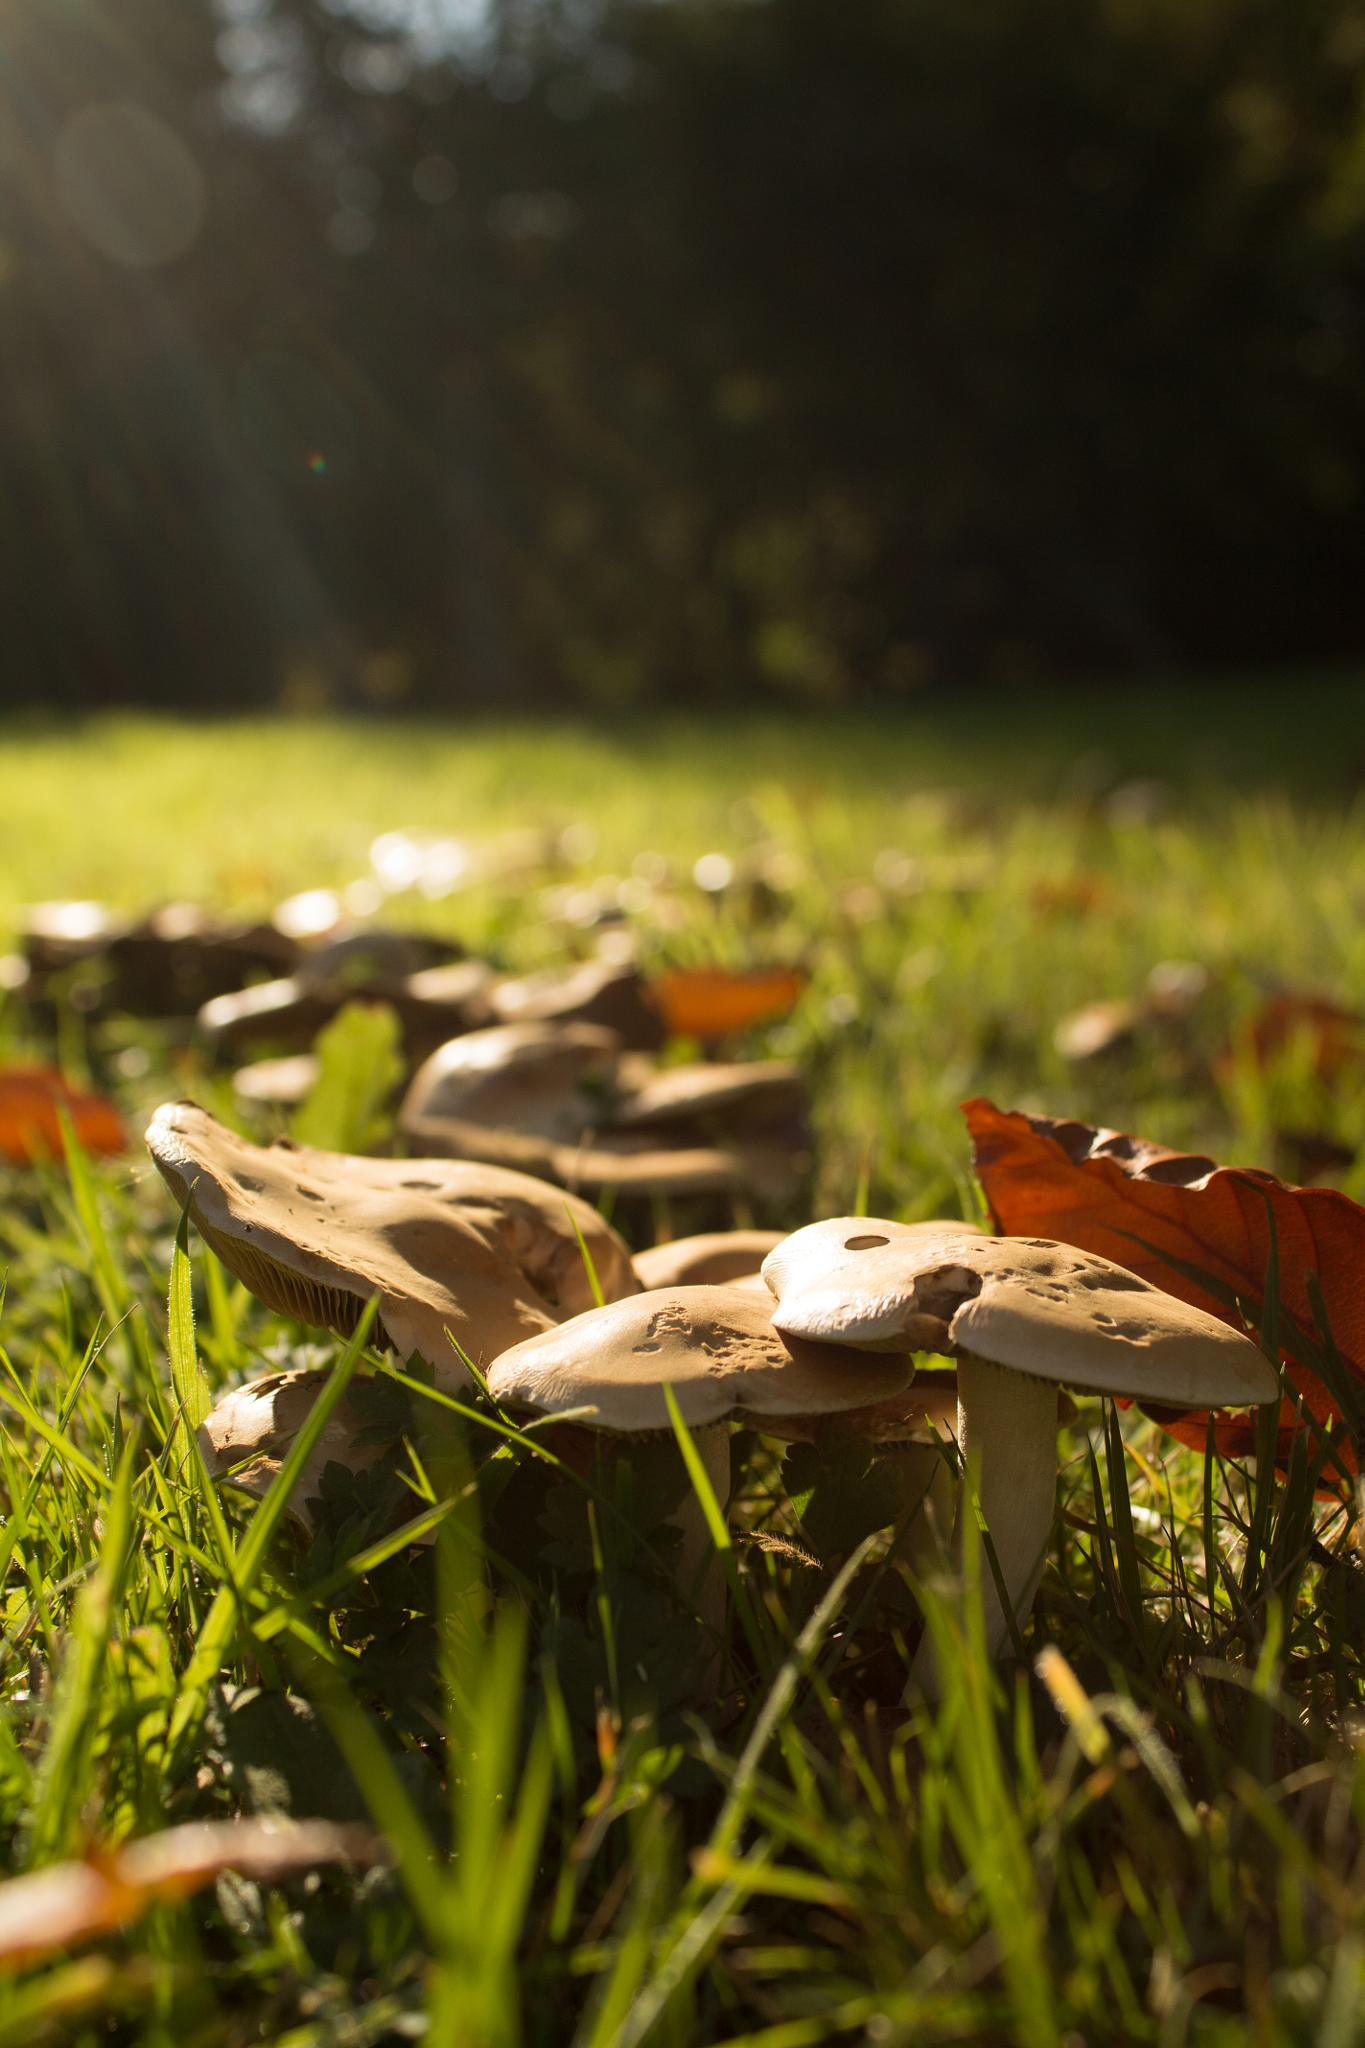 Mushrooms Soaking Up The Sun by Steven Ritchie